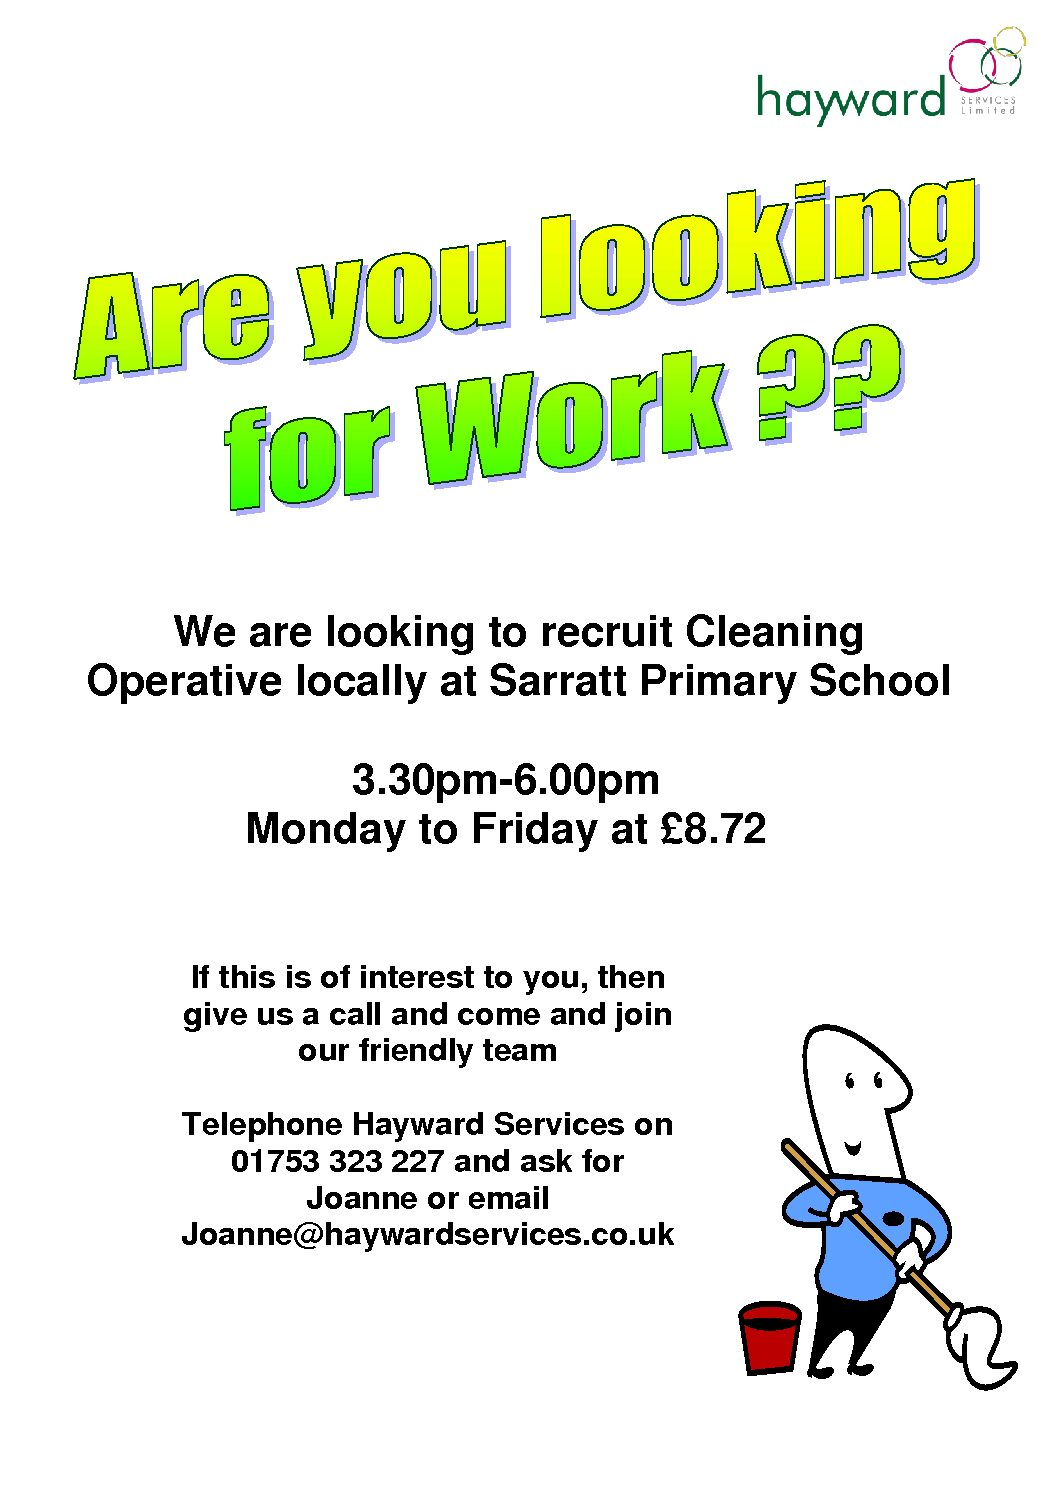 Opportunity to work at the Sarratt Primary School